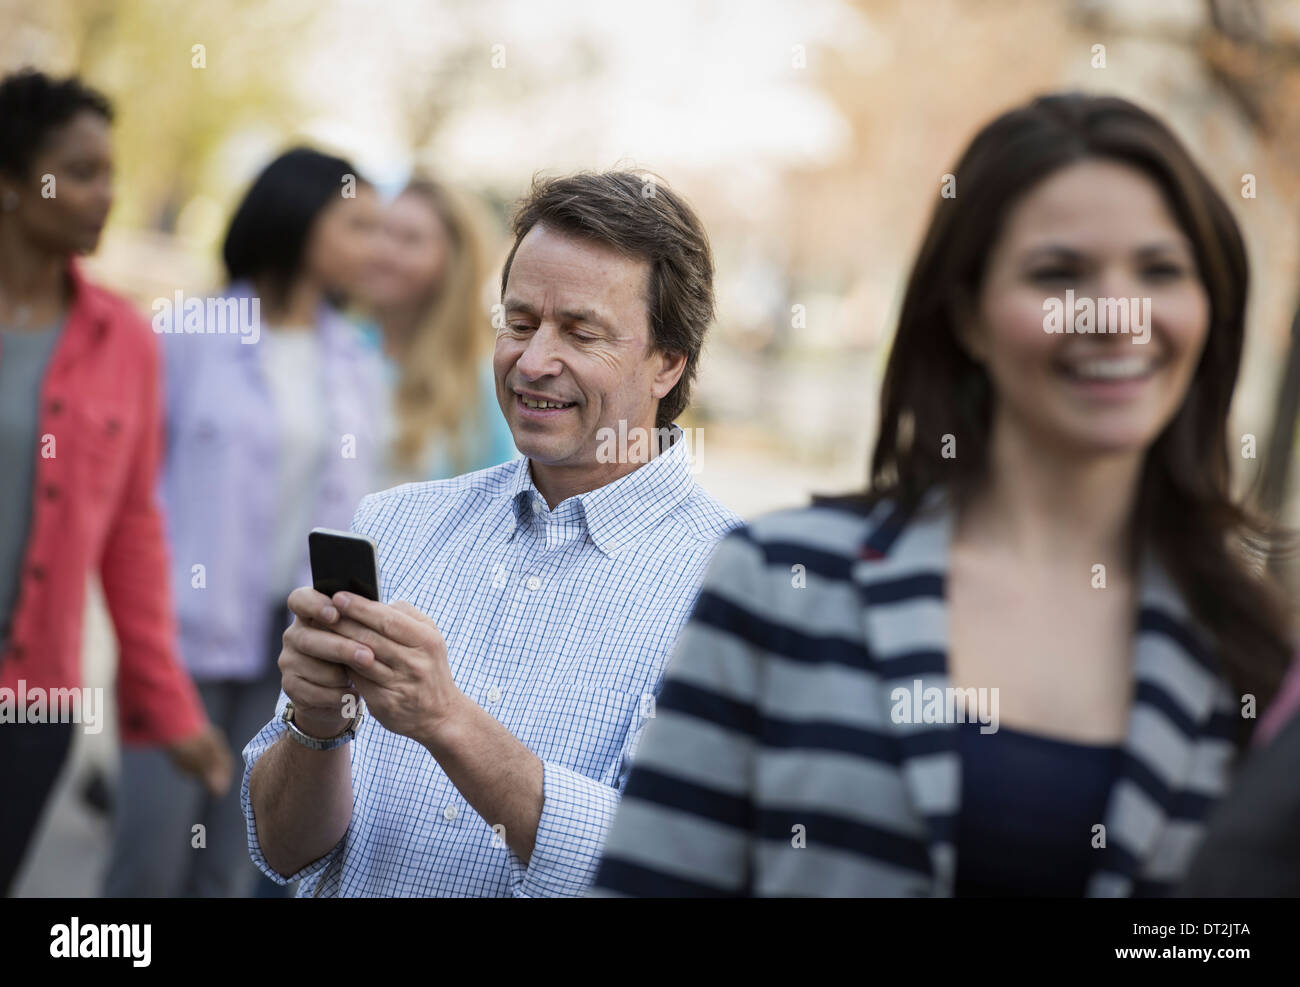 People outdoors in the city in spring time A man checking his cell phone among - Stock Image